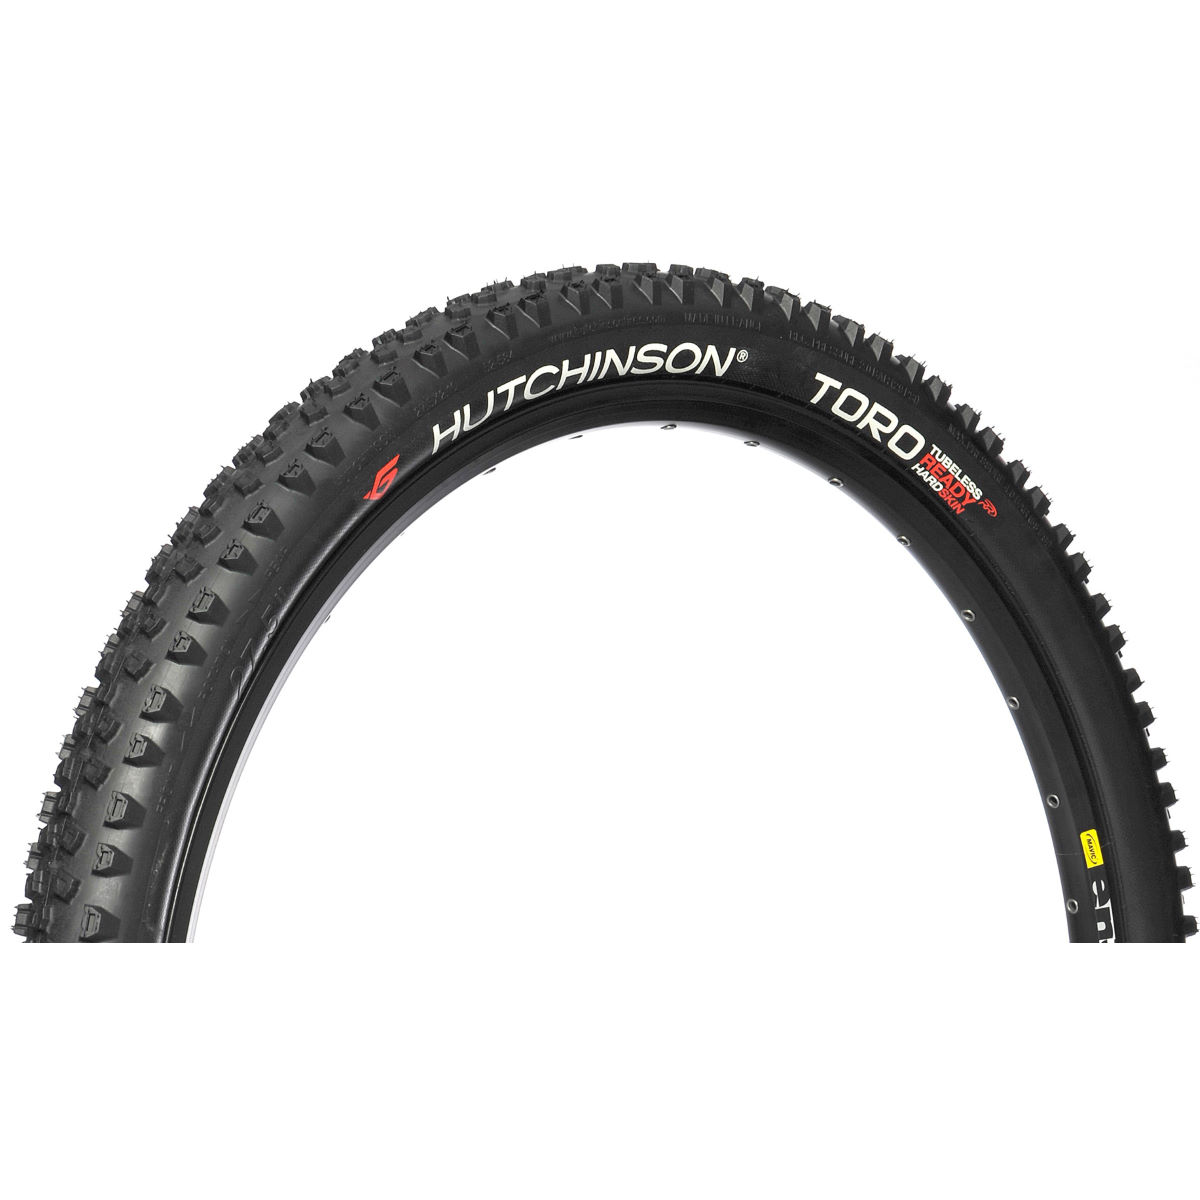 Pneu de cyclo-cross Hutchinson Toro (tubeless, souple) - 700 x 32c Noir Pneus cyclo-cross